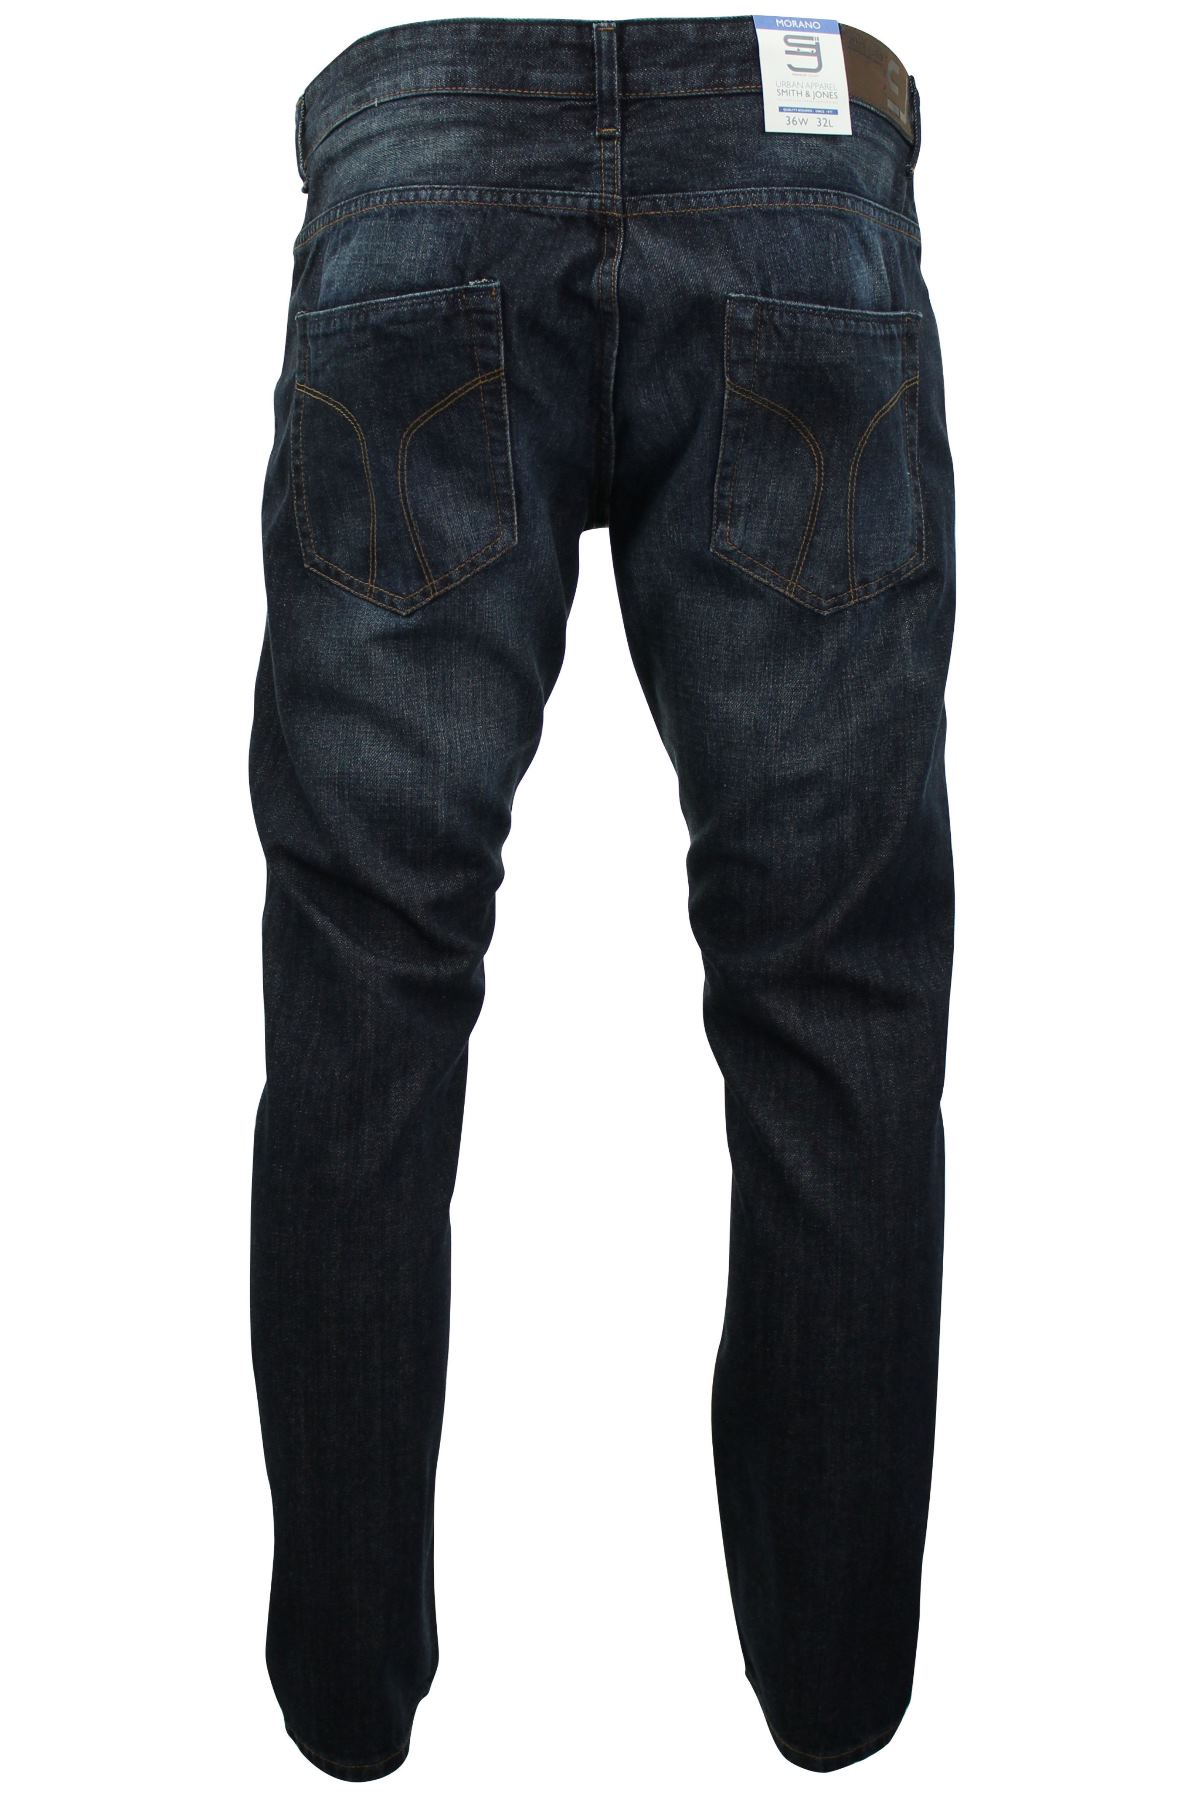 Mens Jeans Smith & Jones Deinm Raw Stone Washed Straight Fit Or Slim Fit